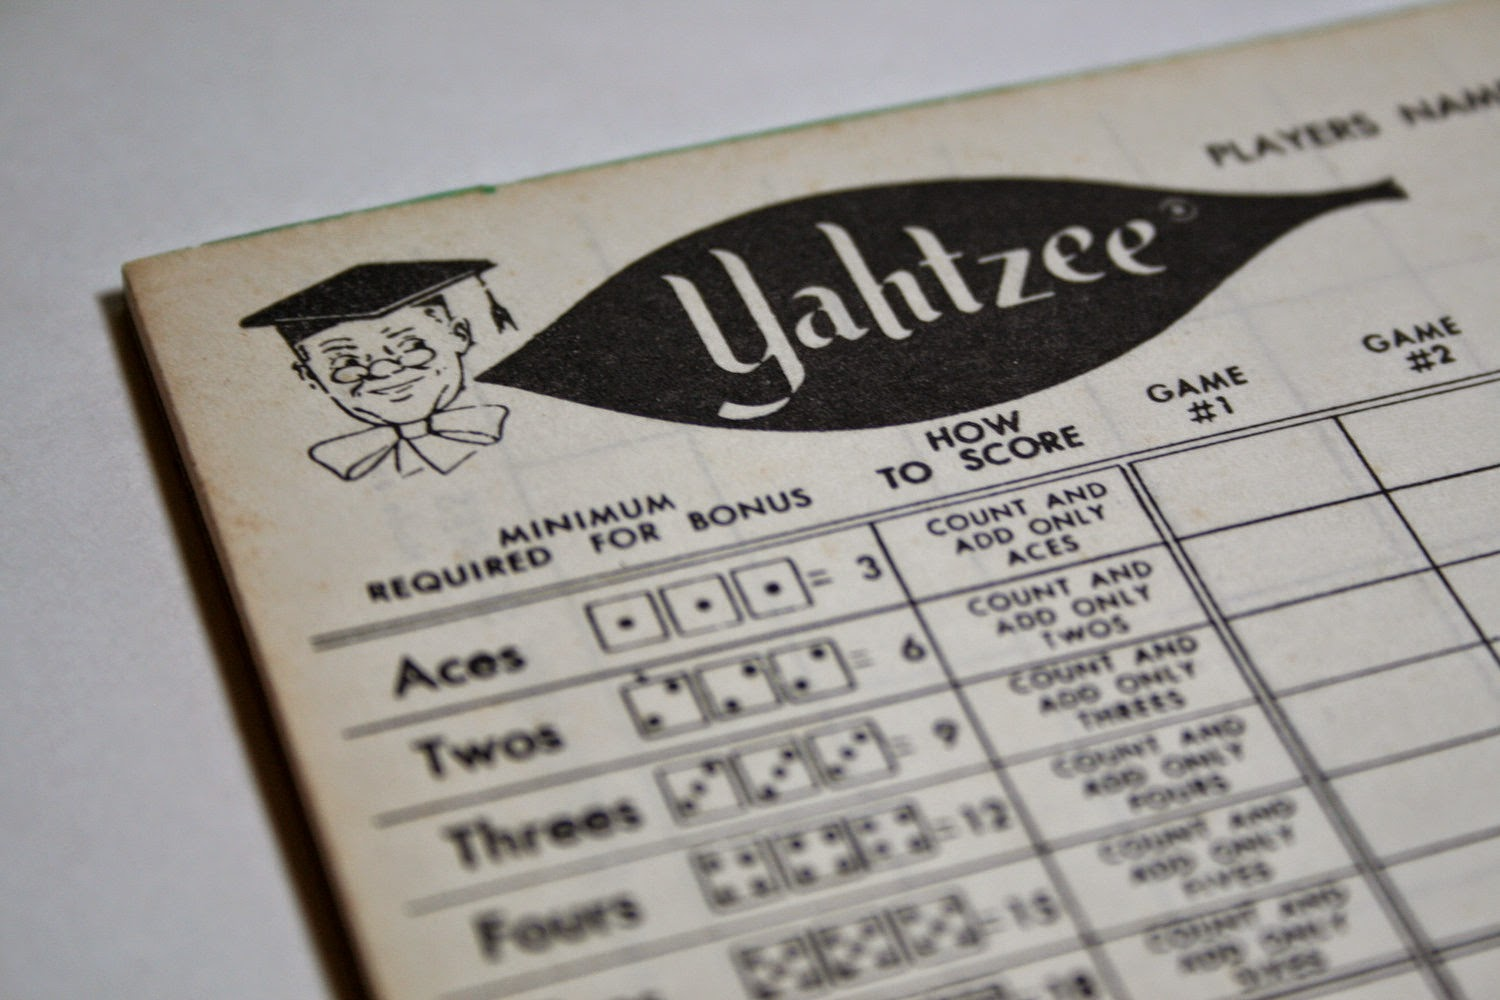 image regarding Printable Yahtzee Score Pads referred to as Yahtzee On line: Printable Yahtzee Ranking Sheet